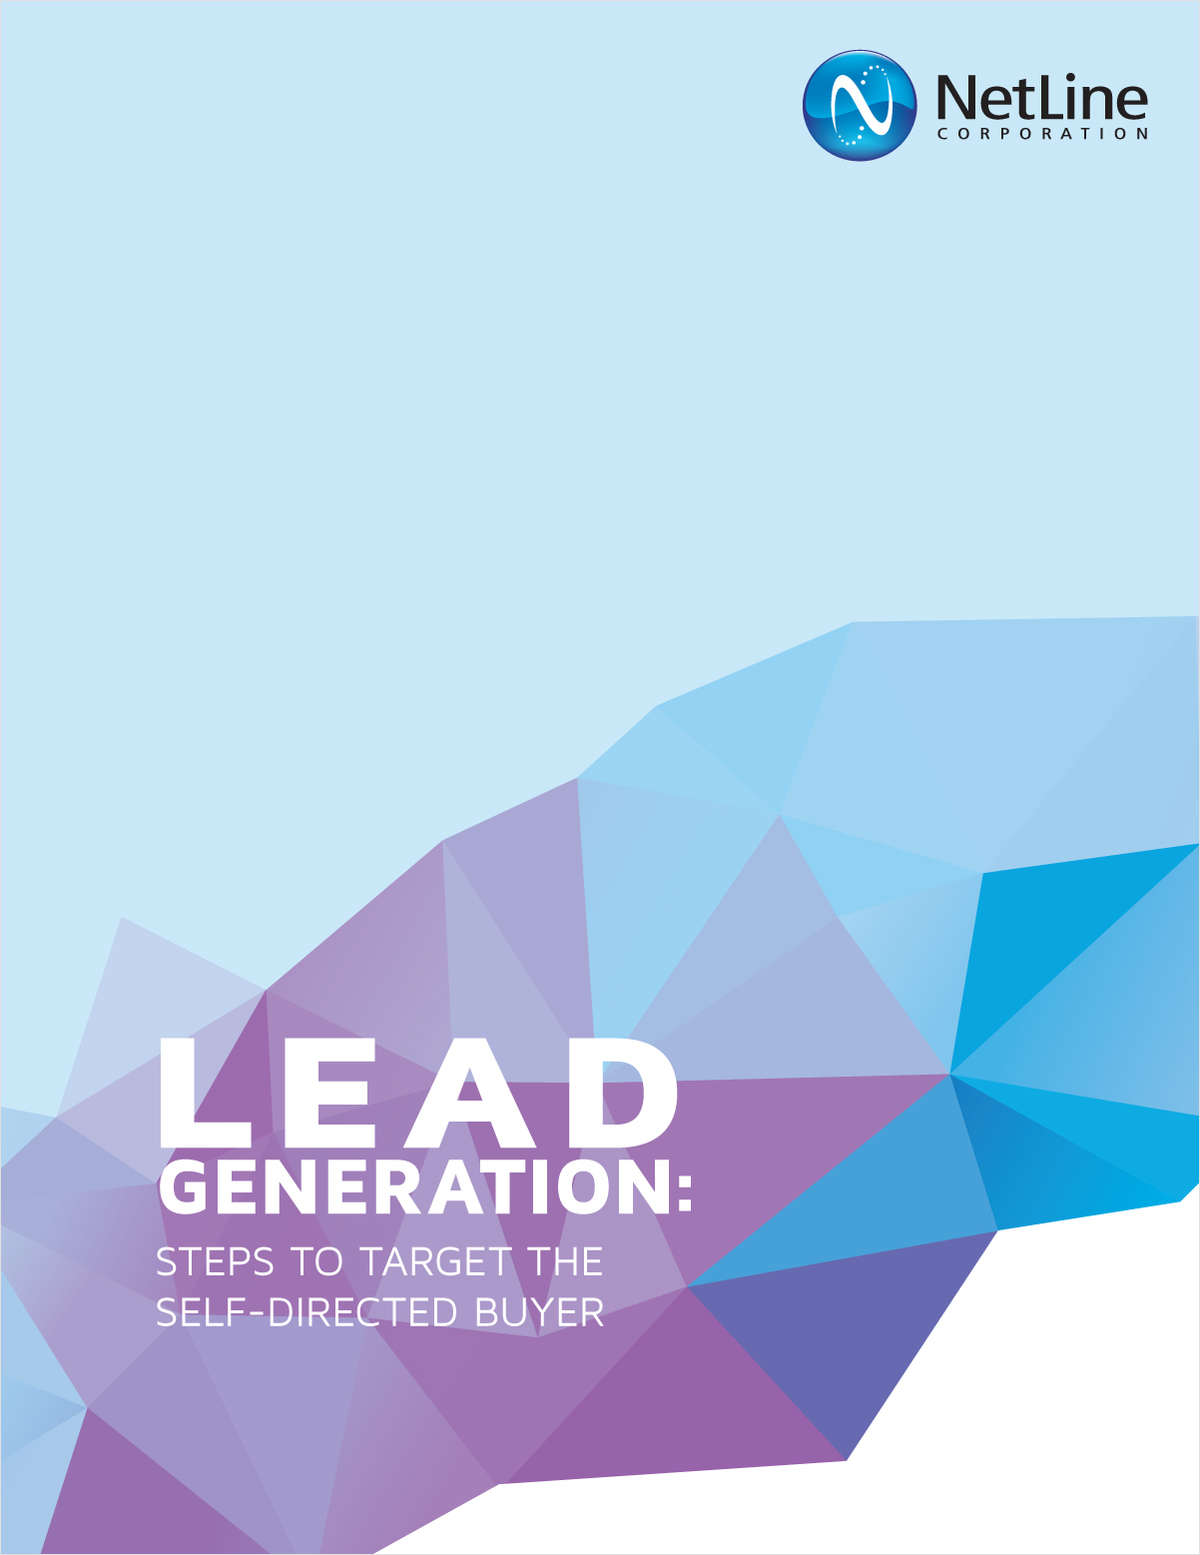 Lead Generation: Steps to Target The Self-directed Buyer